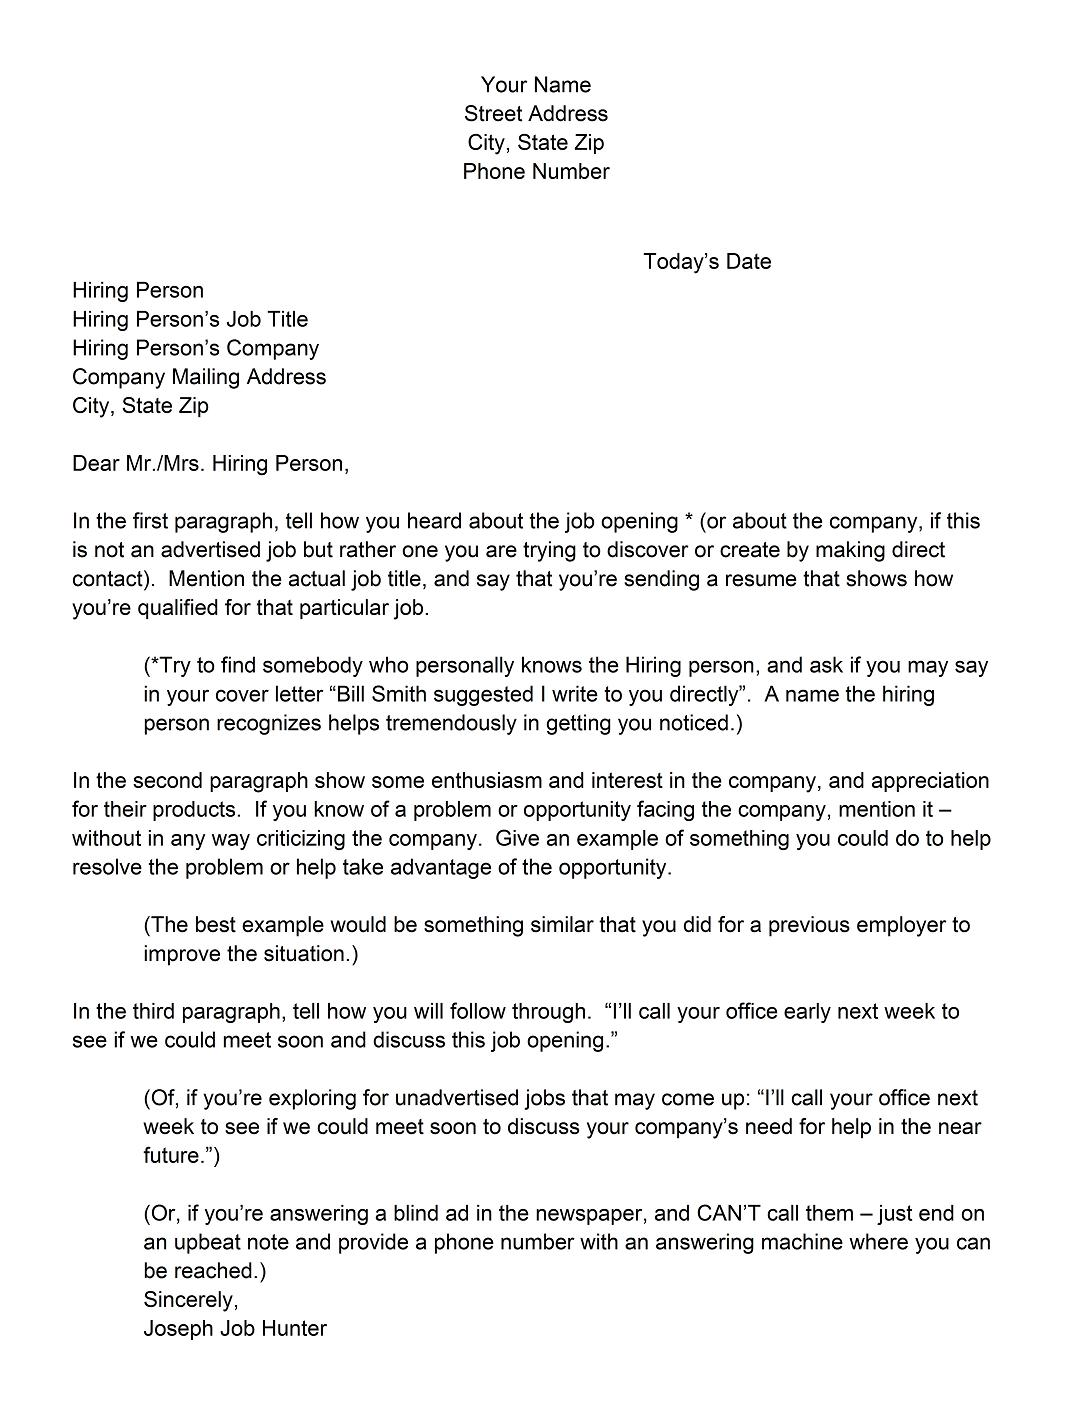 how to wirte a cover letter - 5 way to writing the best cover letter example for resume